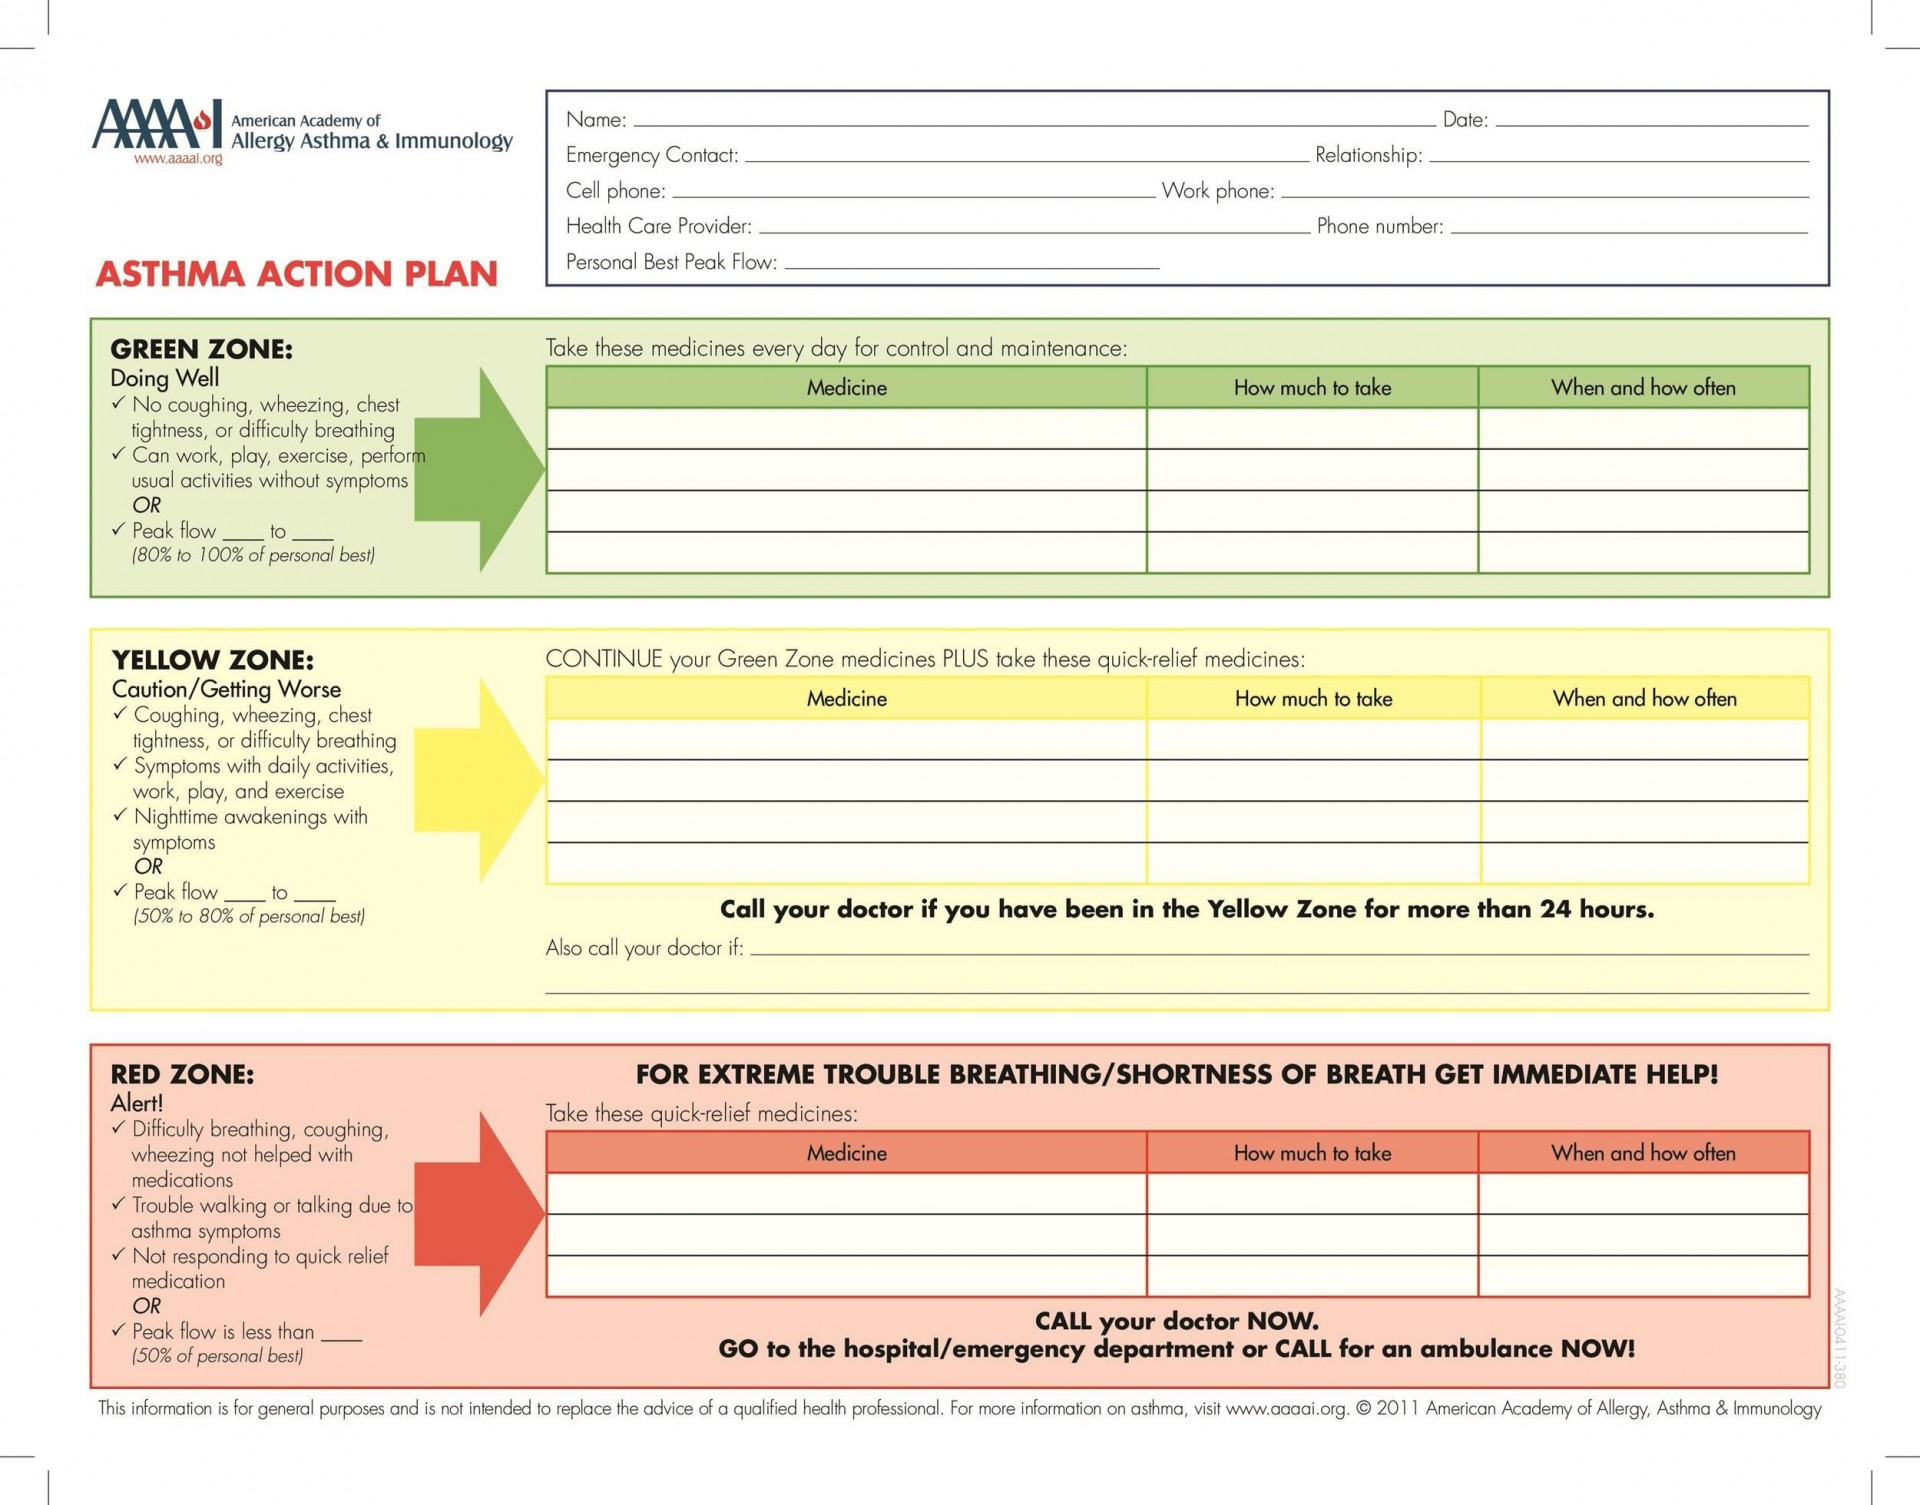 003 Fearsome Action Plan Template Excel High Def 1920